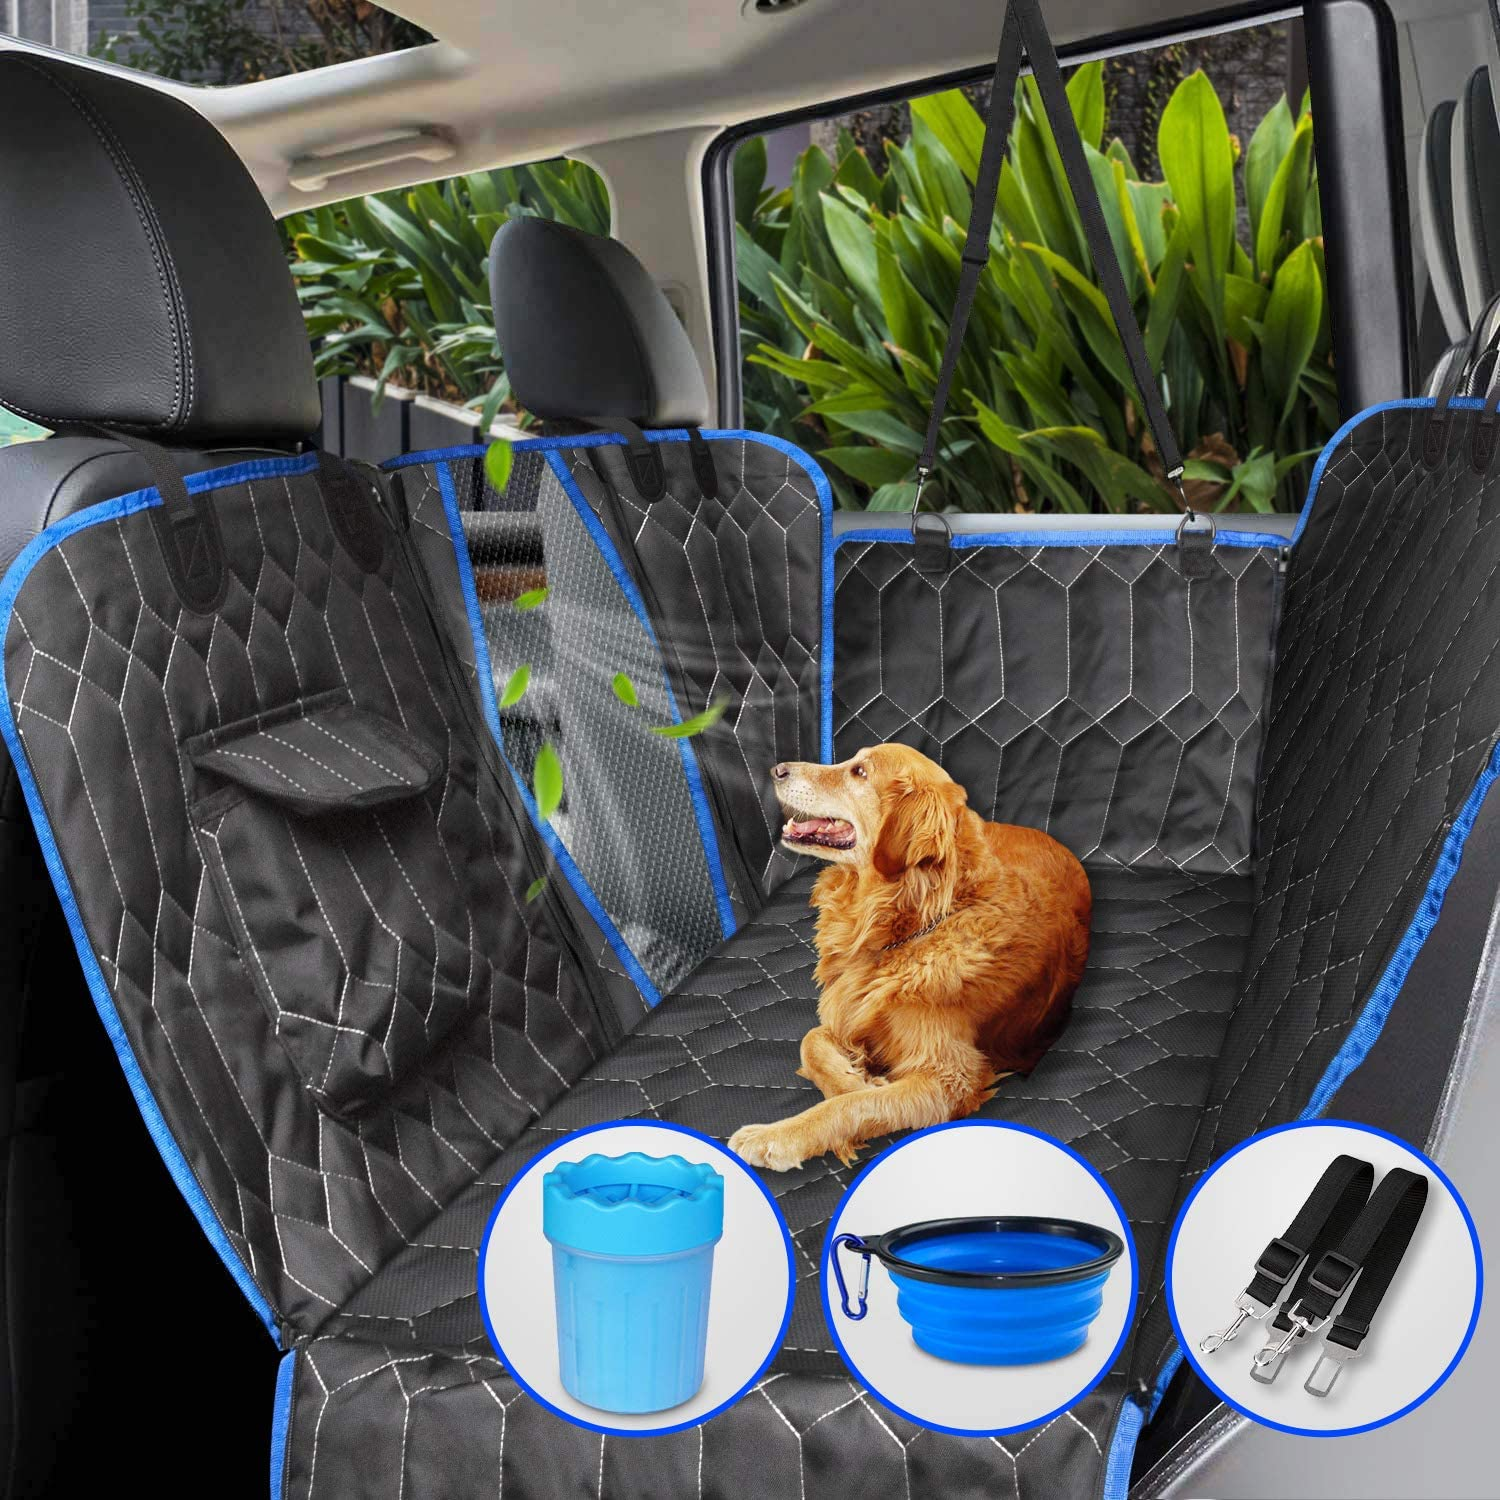 [Upgraded Version] Dog Car Seat Cover for Back Seat, 100% Waterproof Back Seat with Mesh Window, Scratch Proof Nonslip Dog Car Hammock for All Cars, Trucks